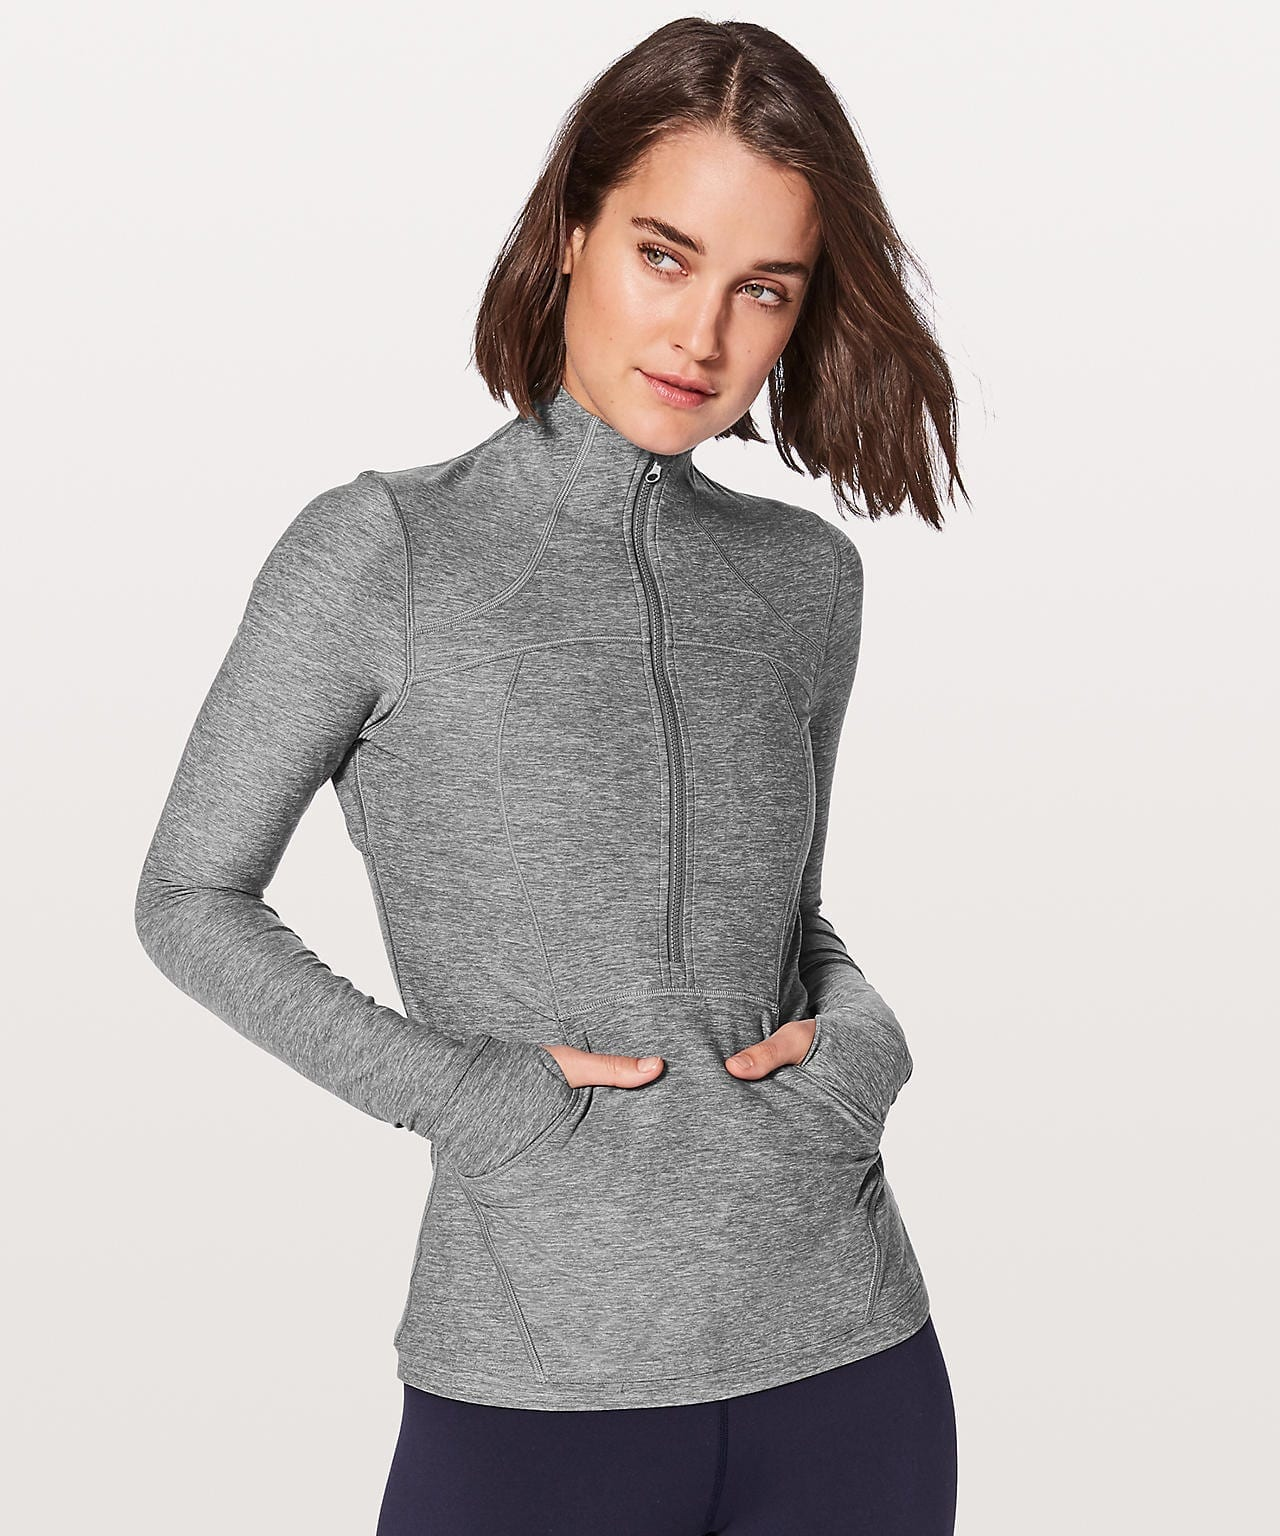 Define Pullover, Lululemon Upload